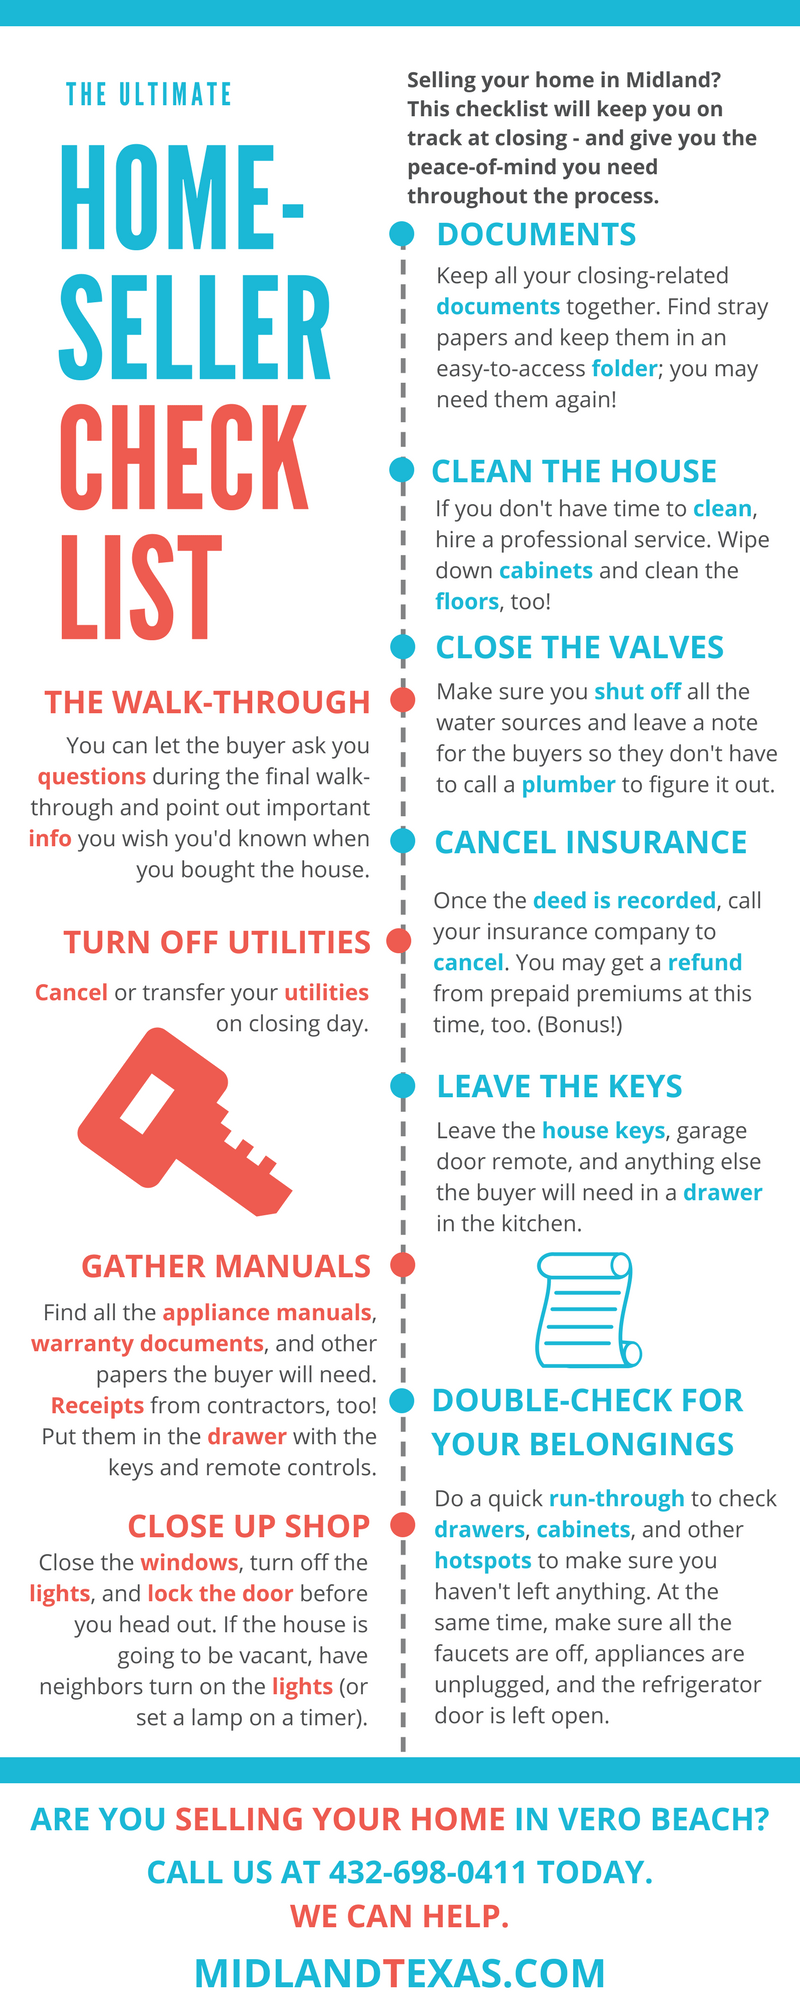 Home Seller Checklist - Sell Your Home in Midland, TX